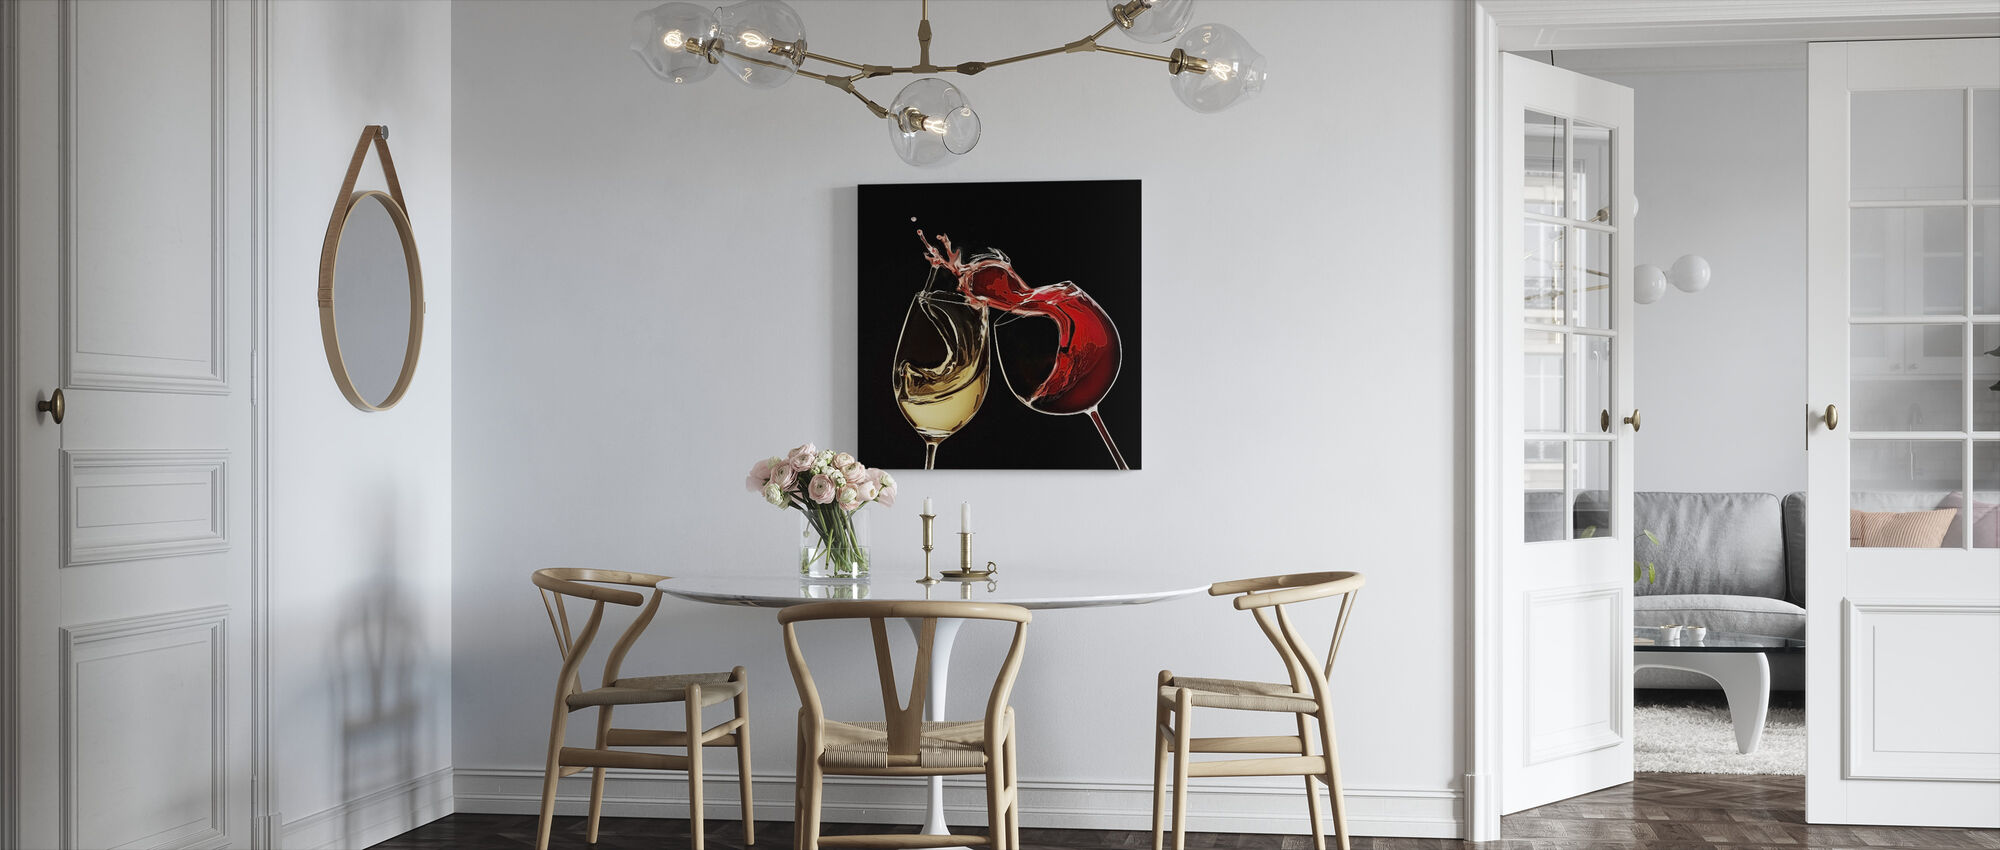 Proost - Canvas print - Keuken